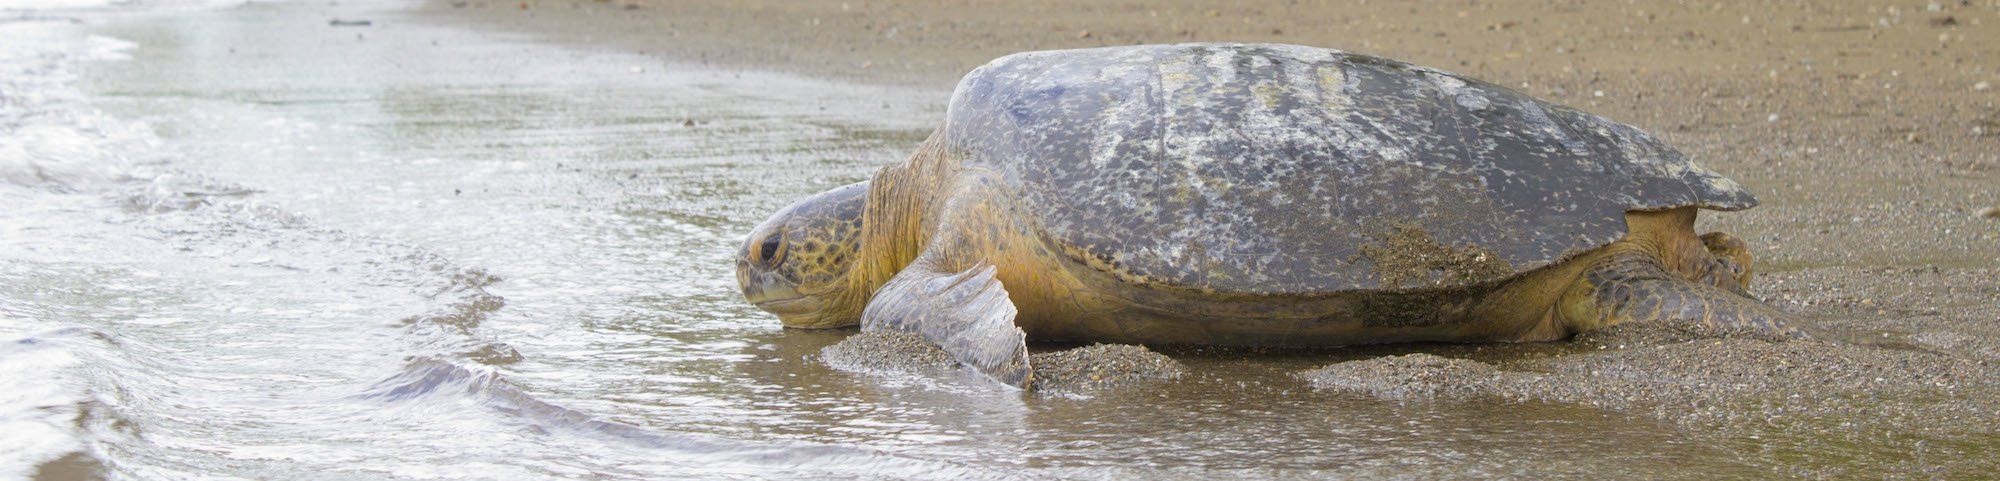 GREEN TURTLE RETURNING TO THE WATER (PHOTO: BRAD NAHILL)